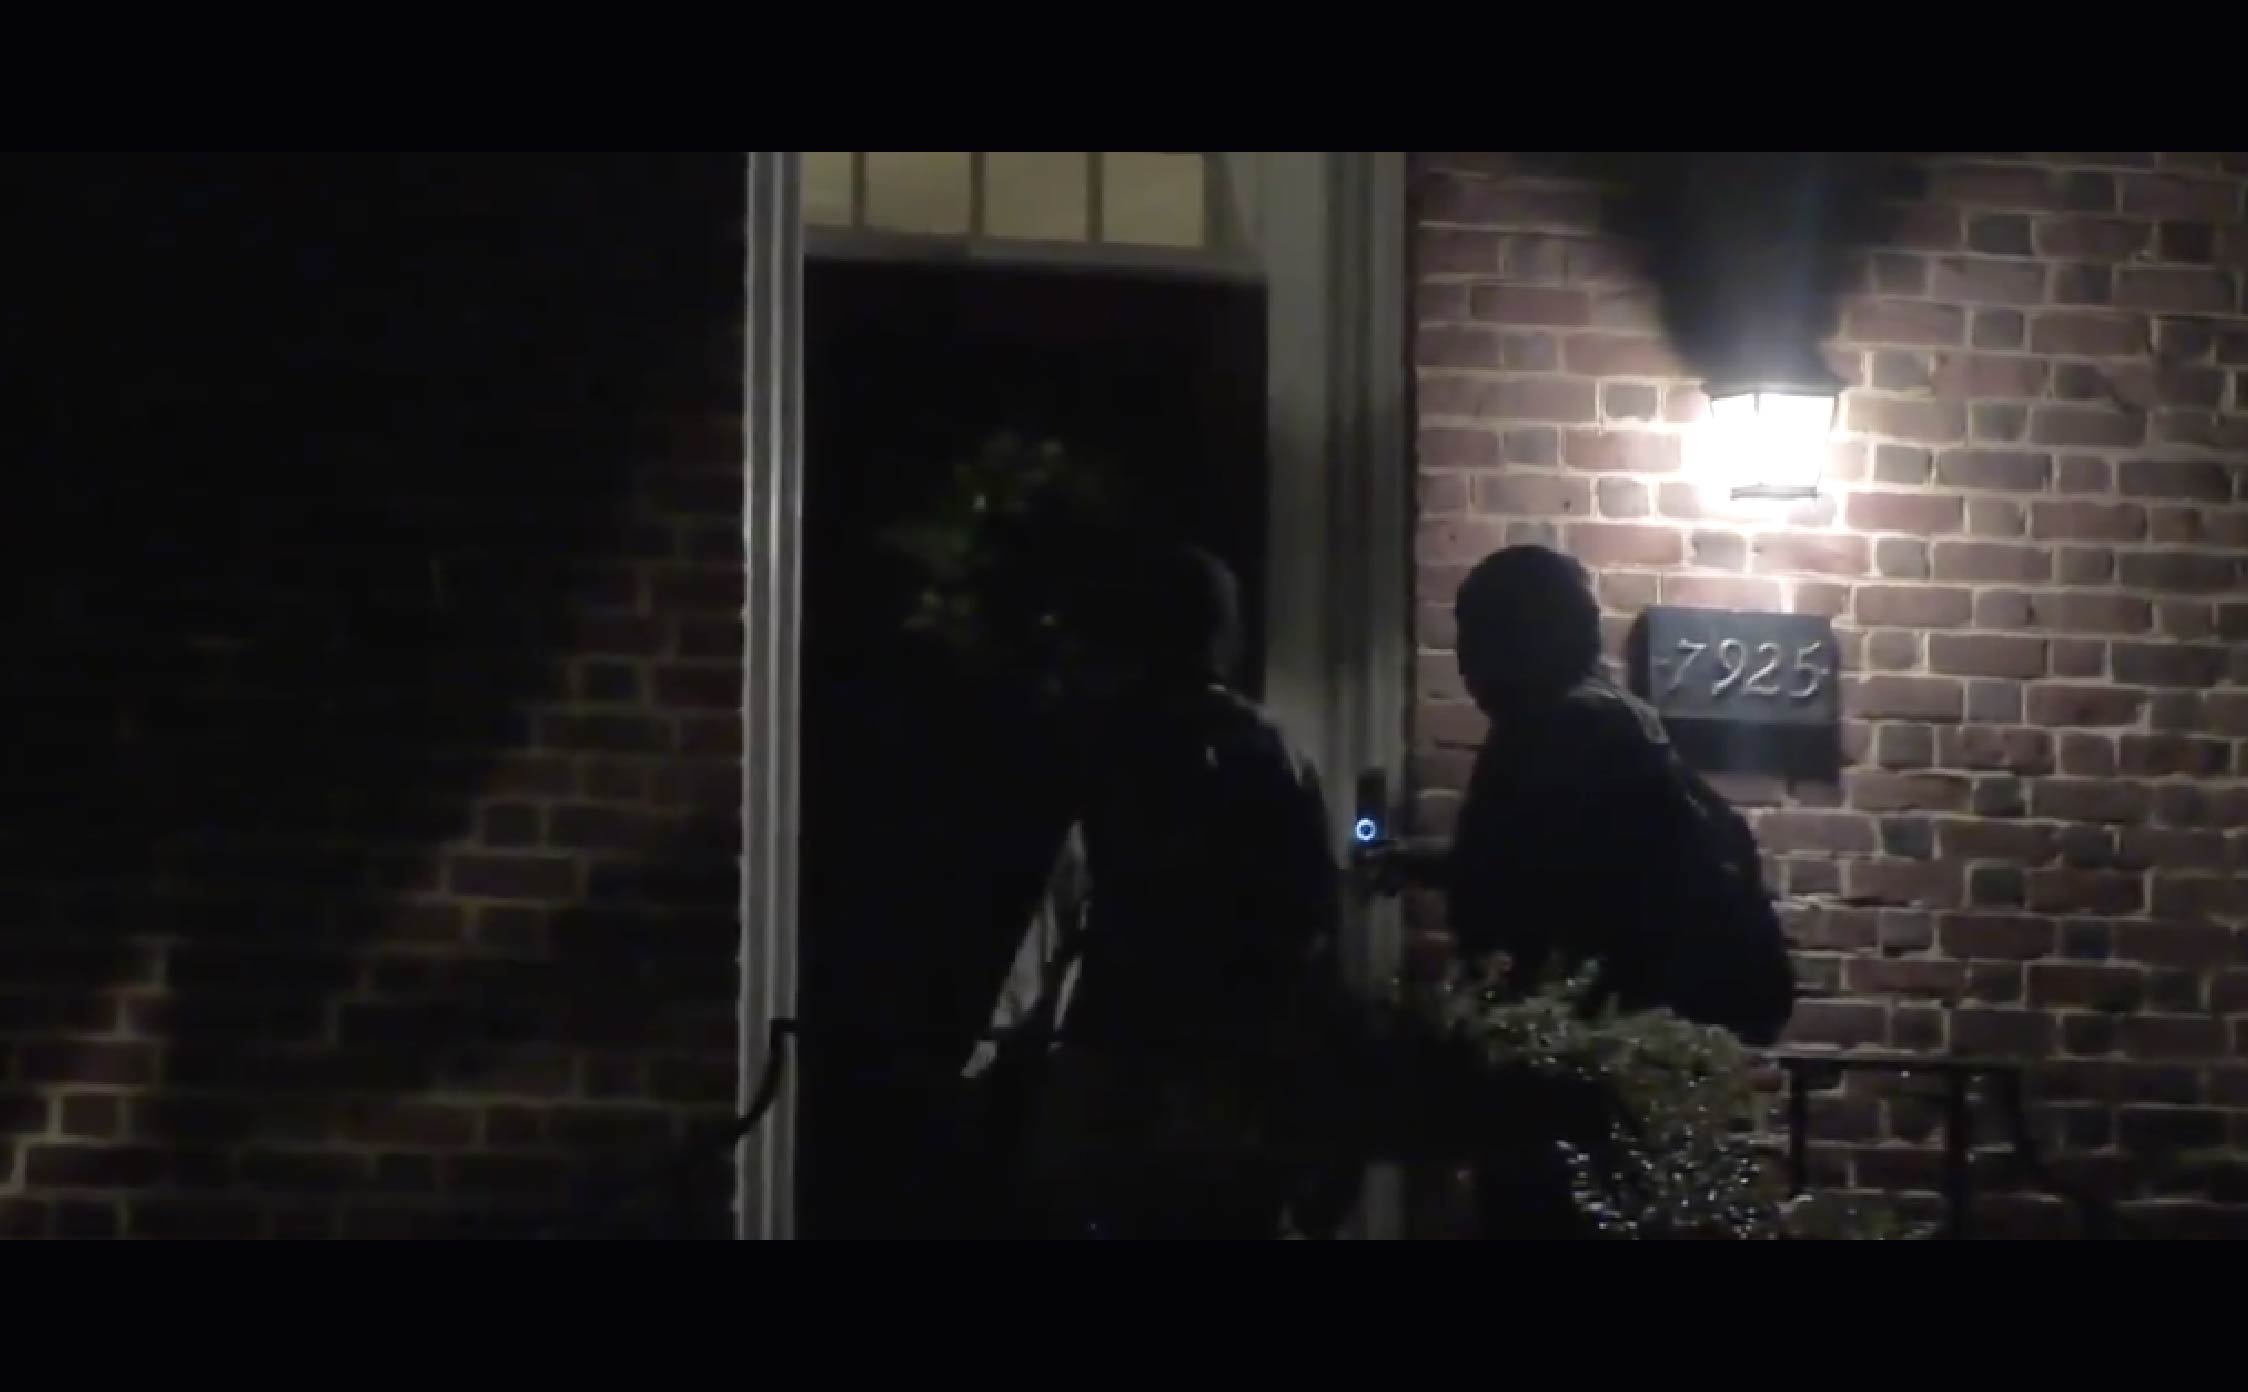 [VIDEO] BLM Activists March Into DC Neighborhood and Start Banging on Random People's Doors in the Middle of the Night